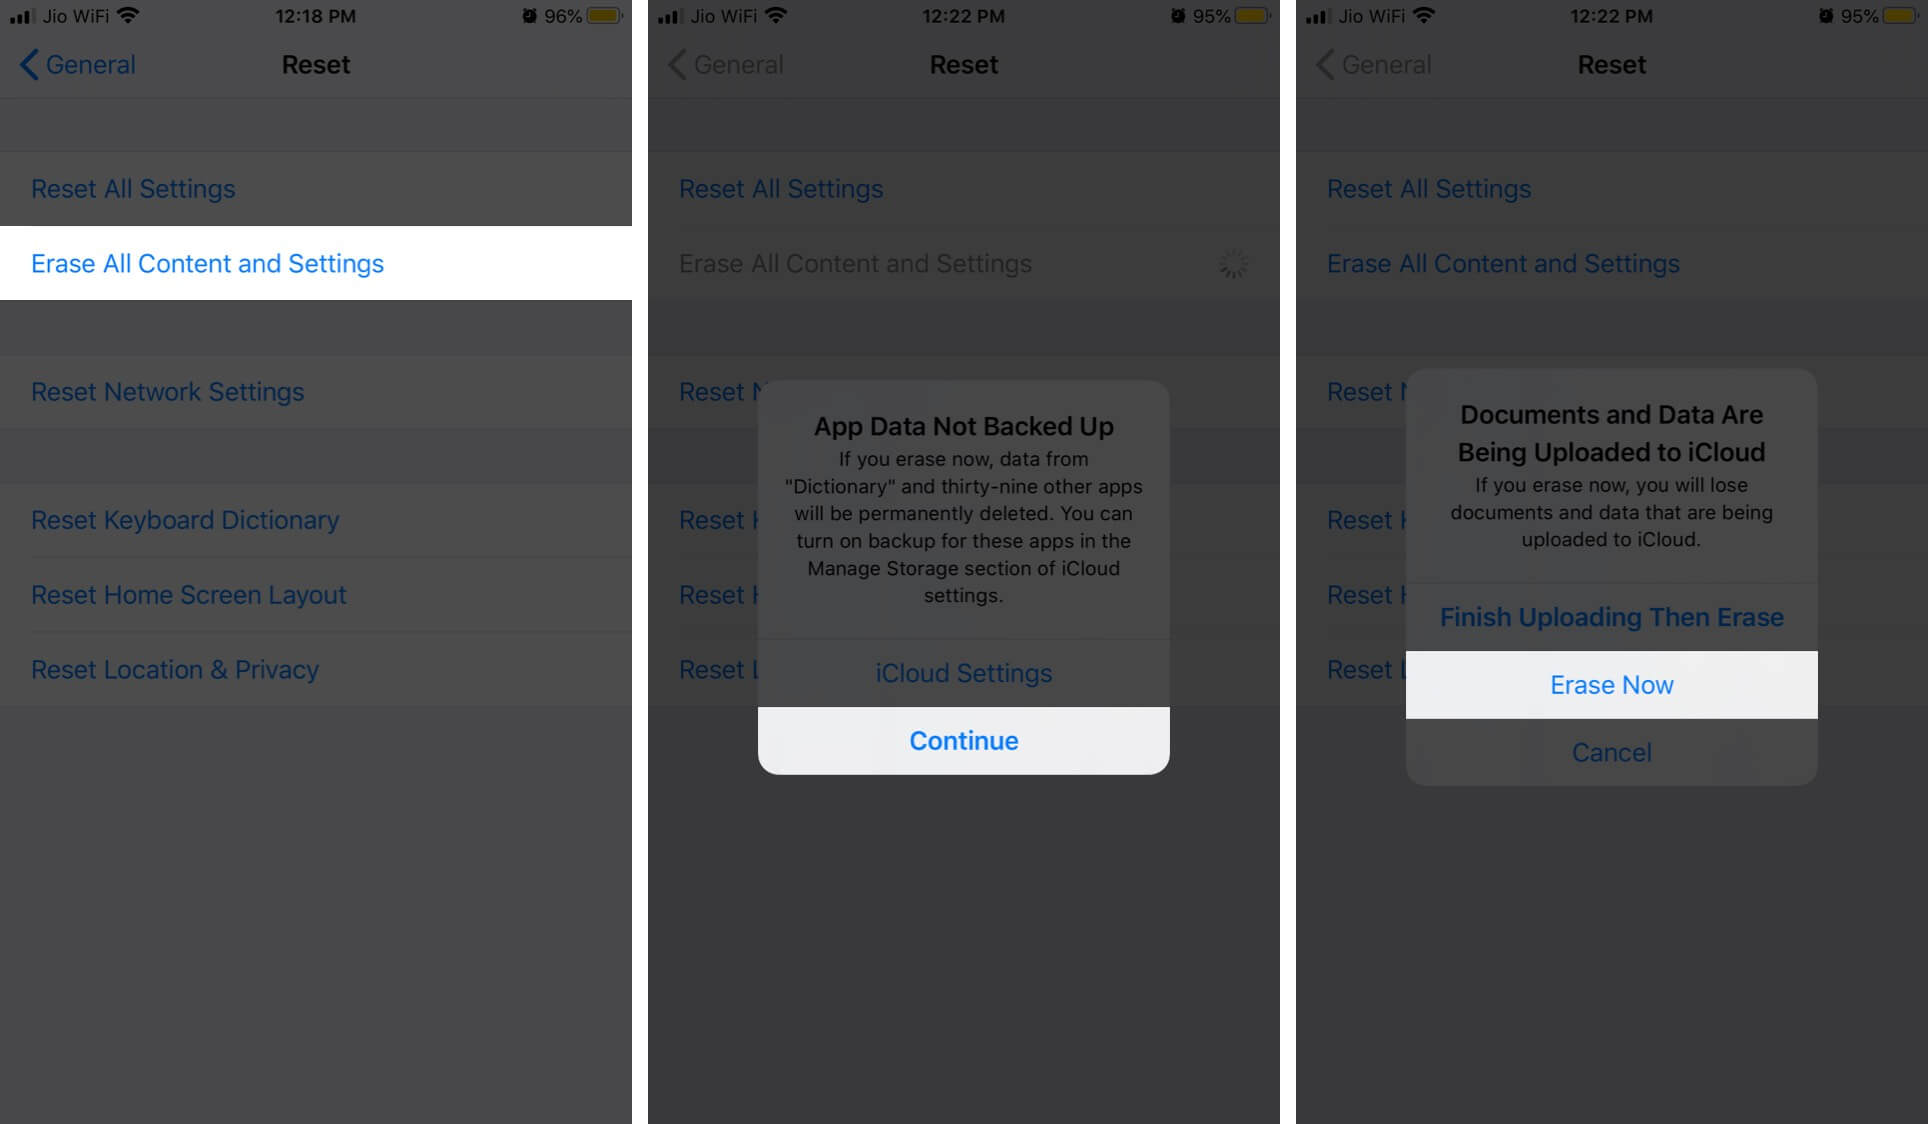 Erase All Content & Settings on iPhone